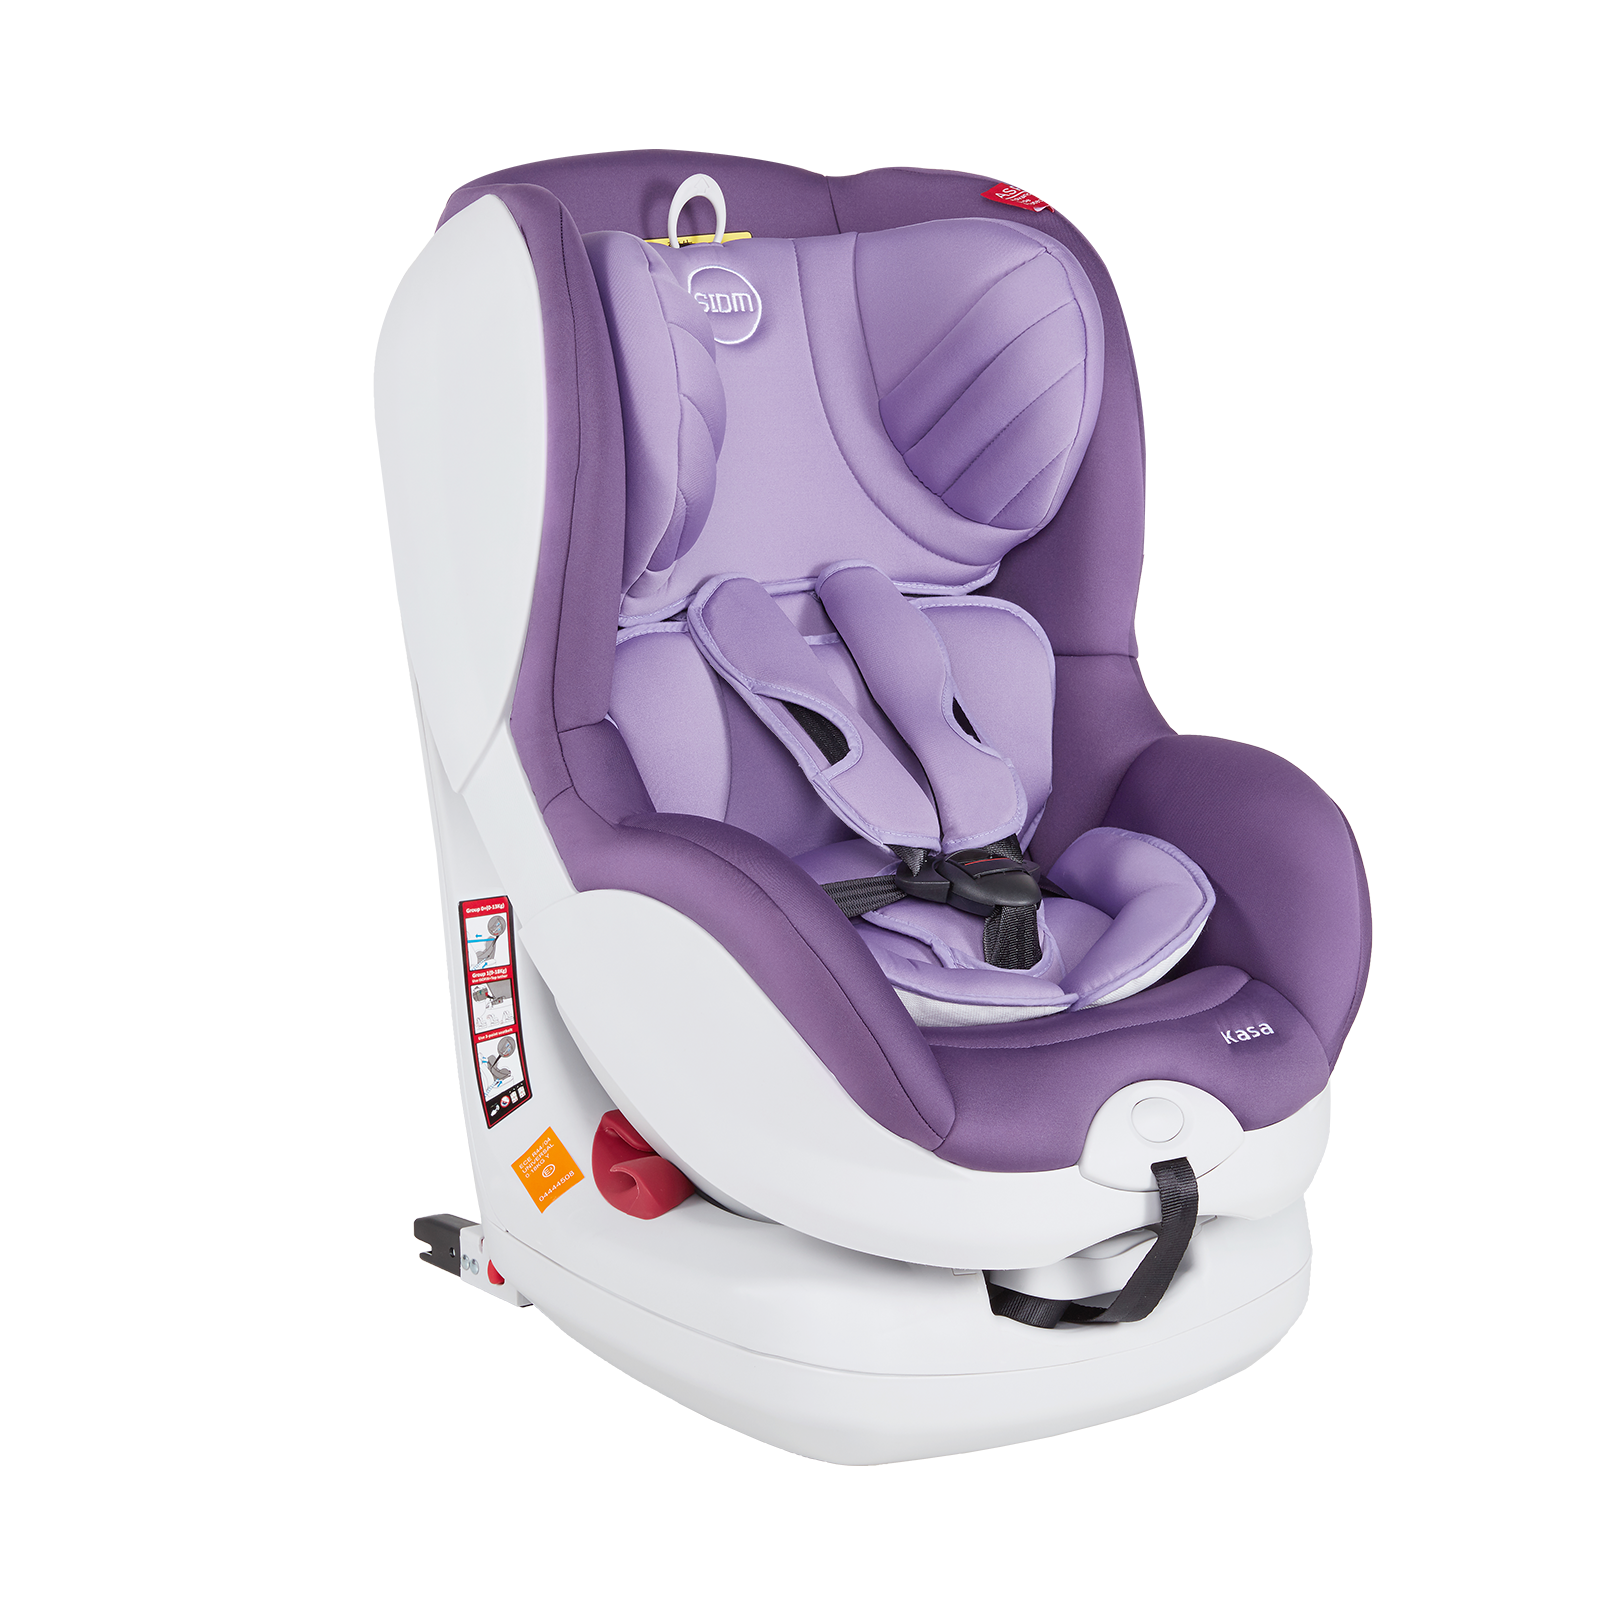 Kasa egg shape design seat suitable for baby from newborn 4years old